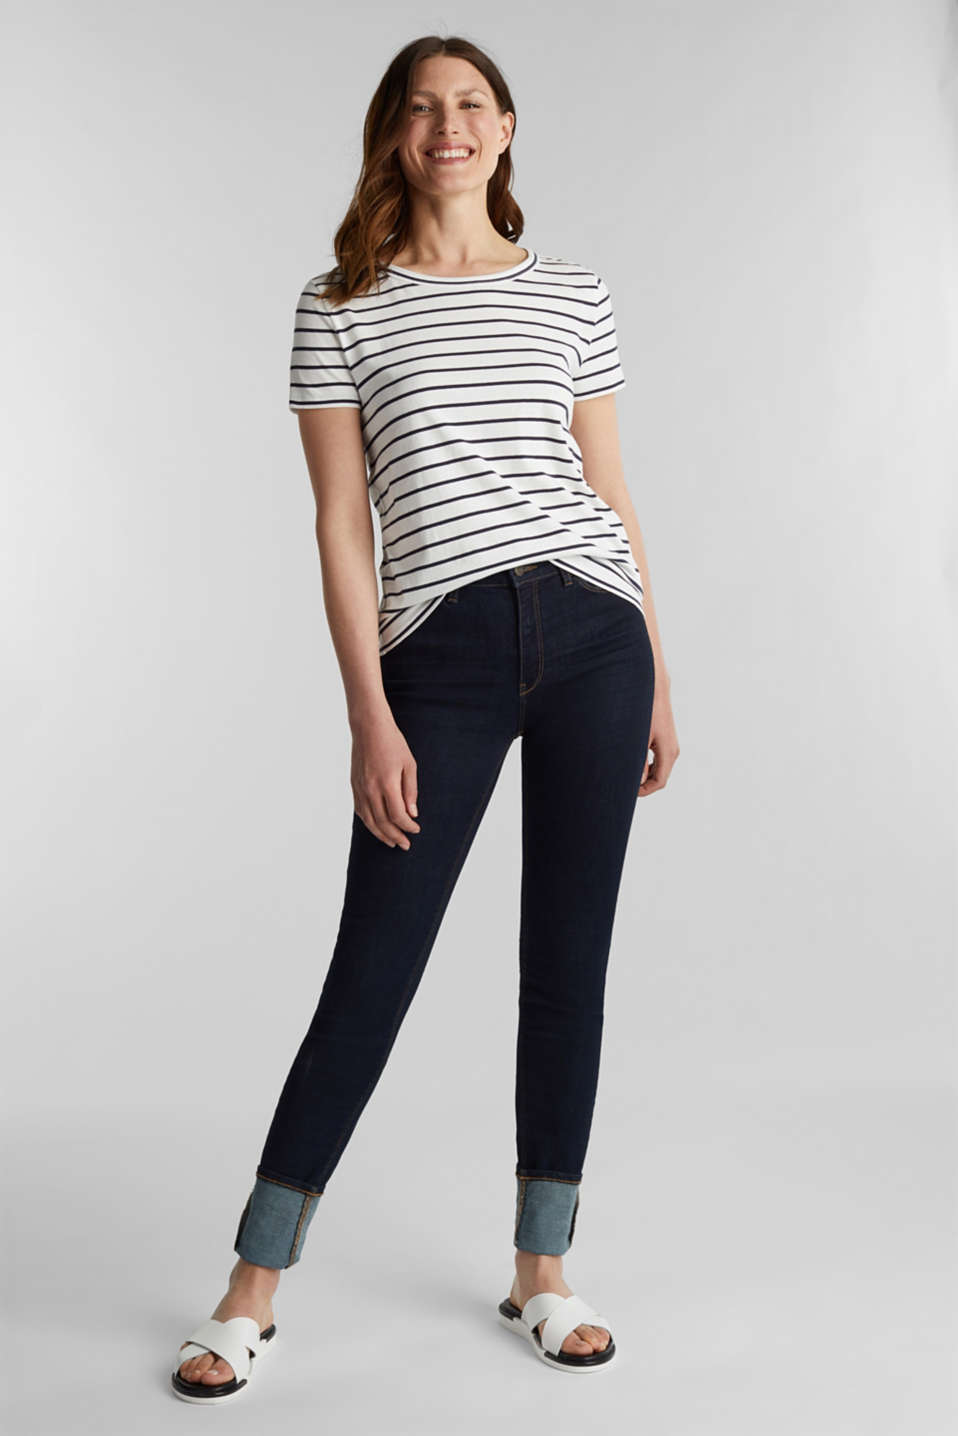 T-shirt with stripes, 100% cotton, OFF WHITE, detail image number 5